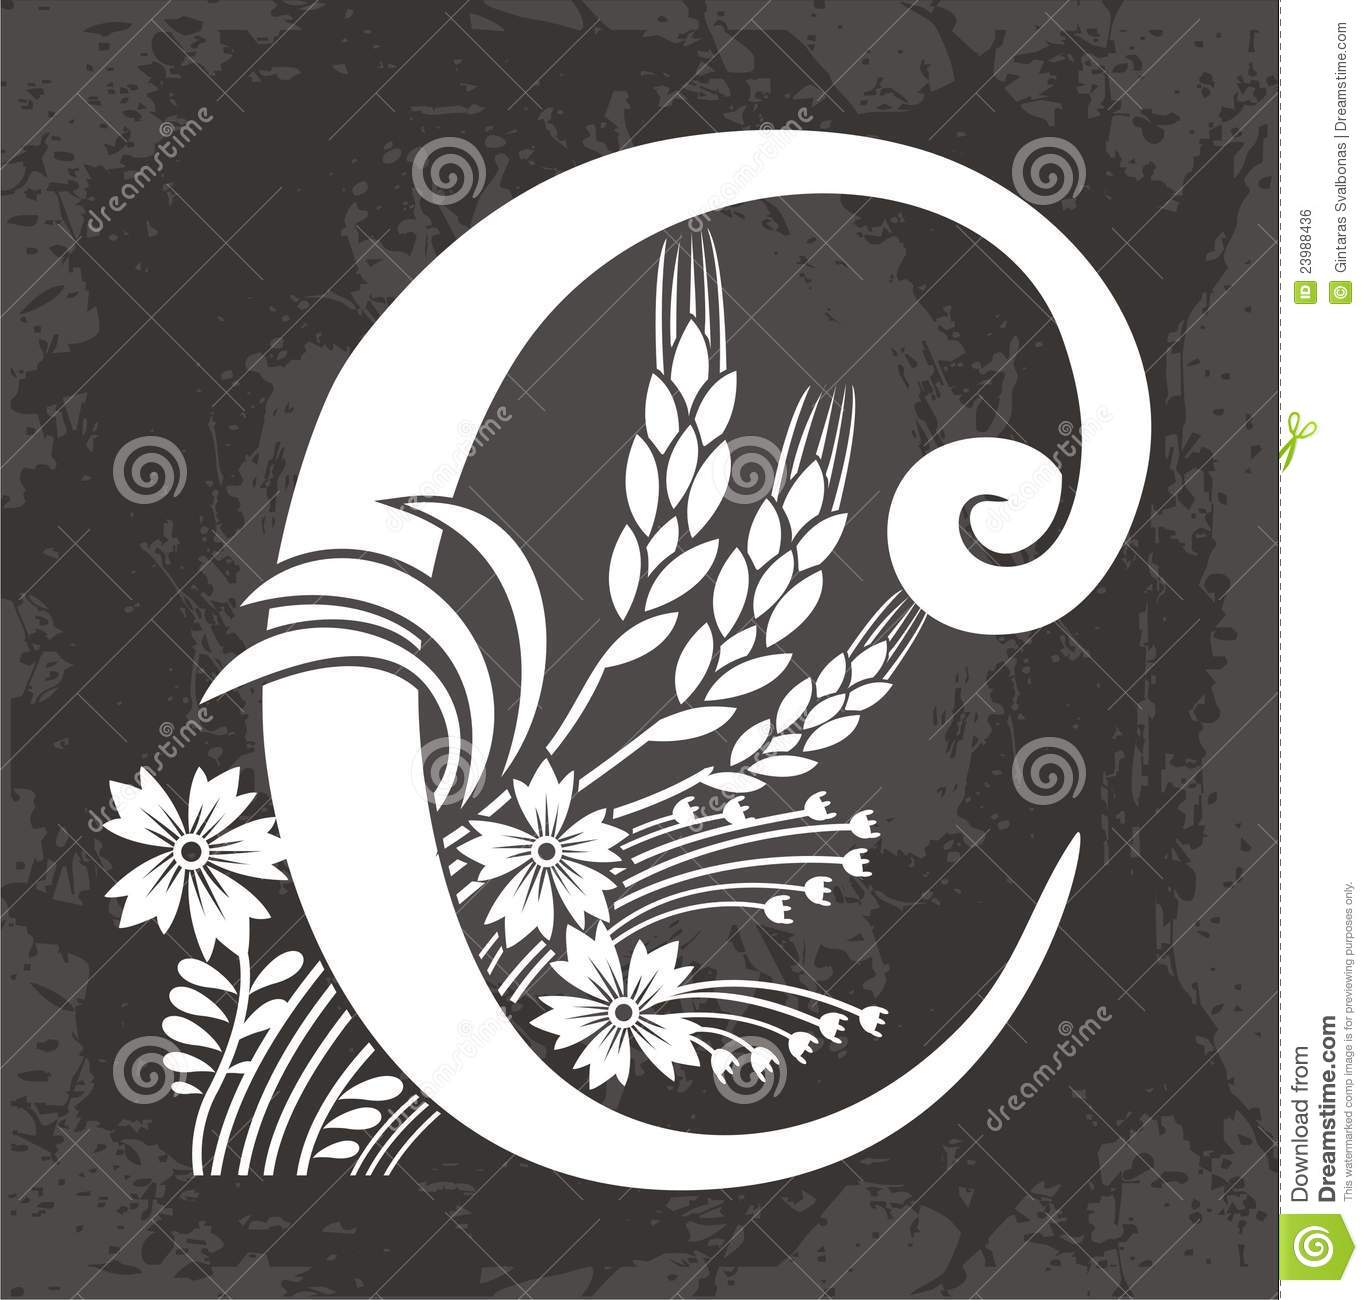 Floral Letter C Royalty Free Stock Image